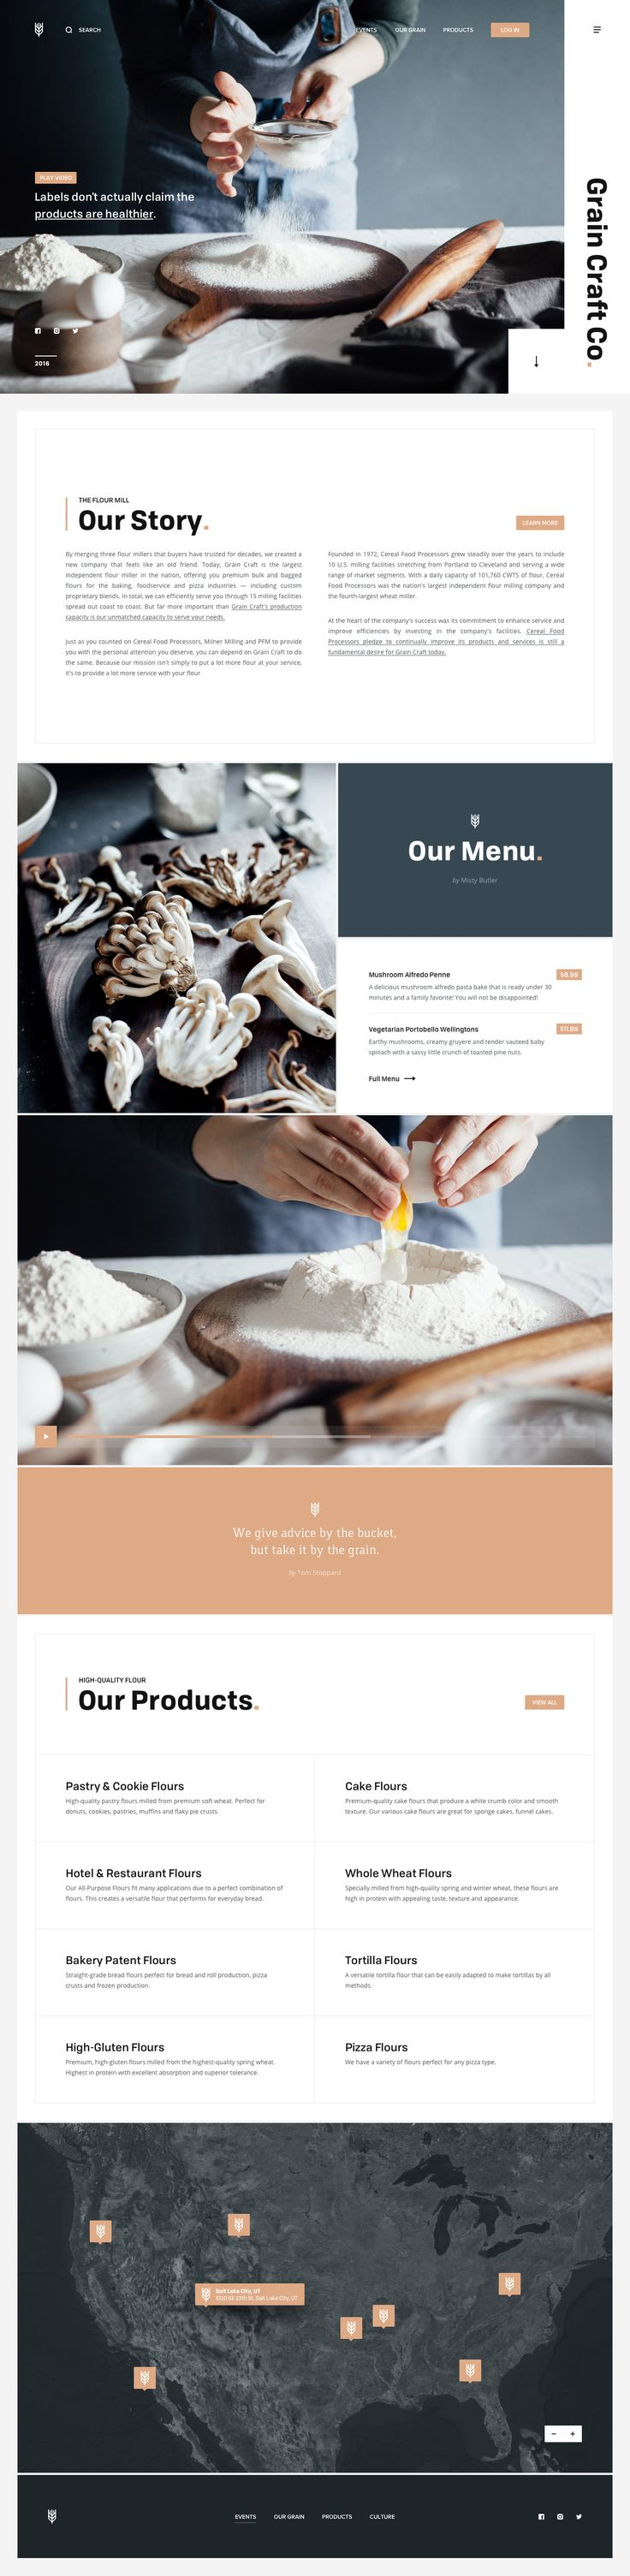 Grain Craft Co. Concept Food Web Design